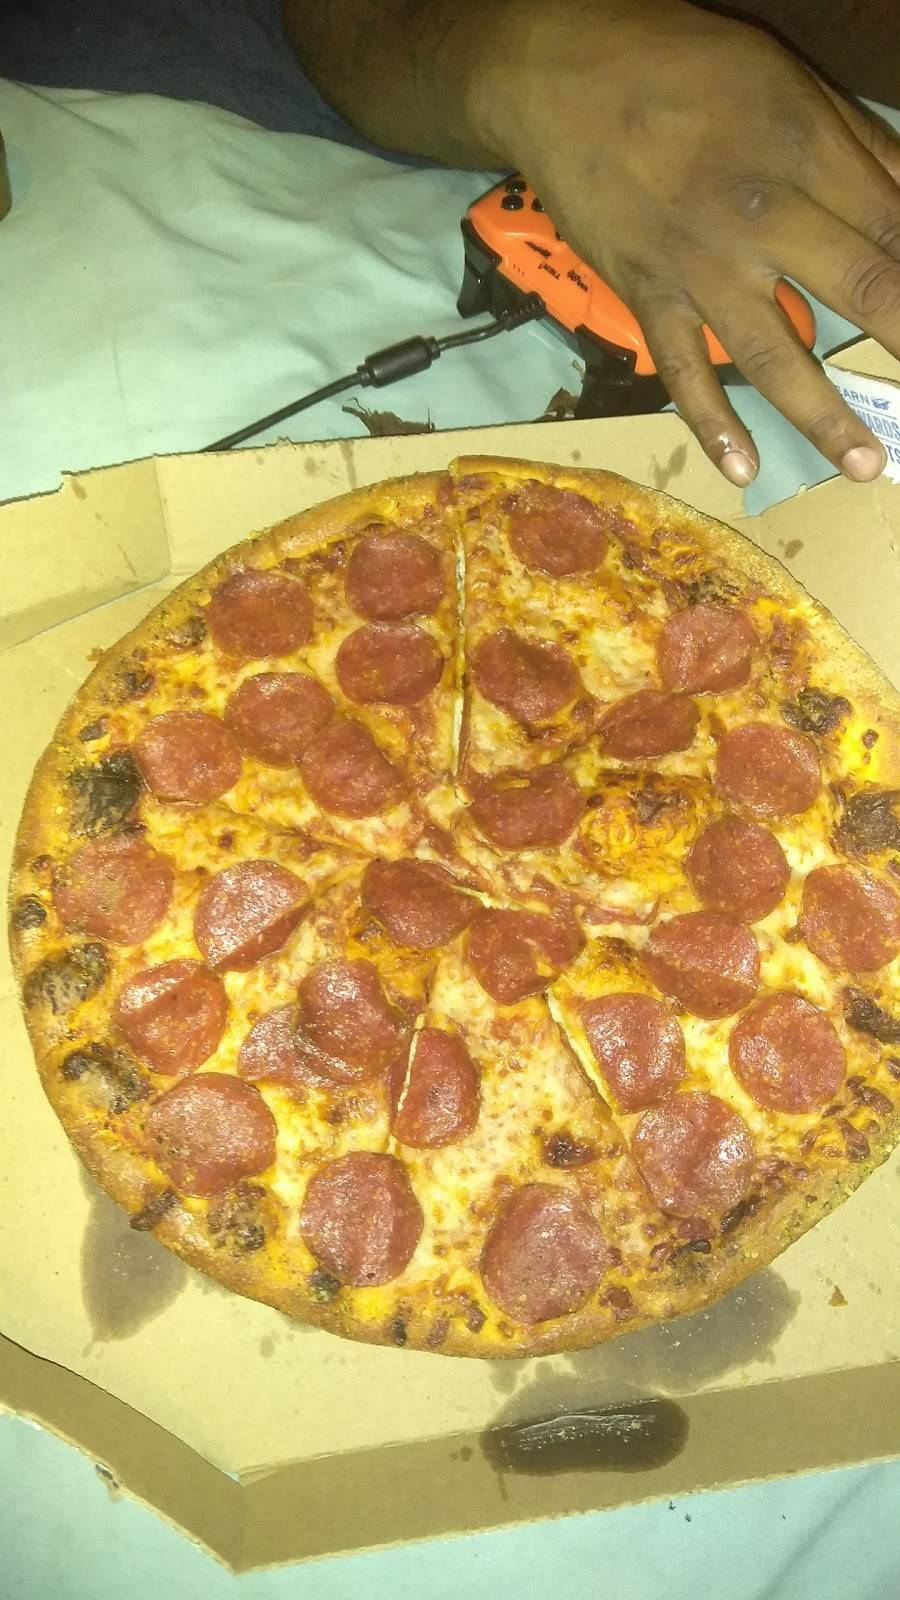 Dominos Pizza   meal delivery   921 E Tremont Ave Ste A, Bronx, NY 10460, USA   7185424993 OR +1 718-542-4993